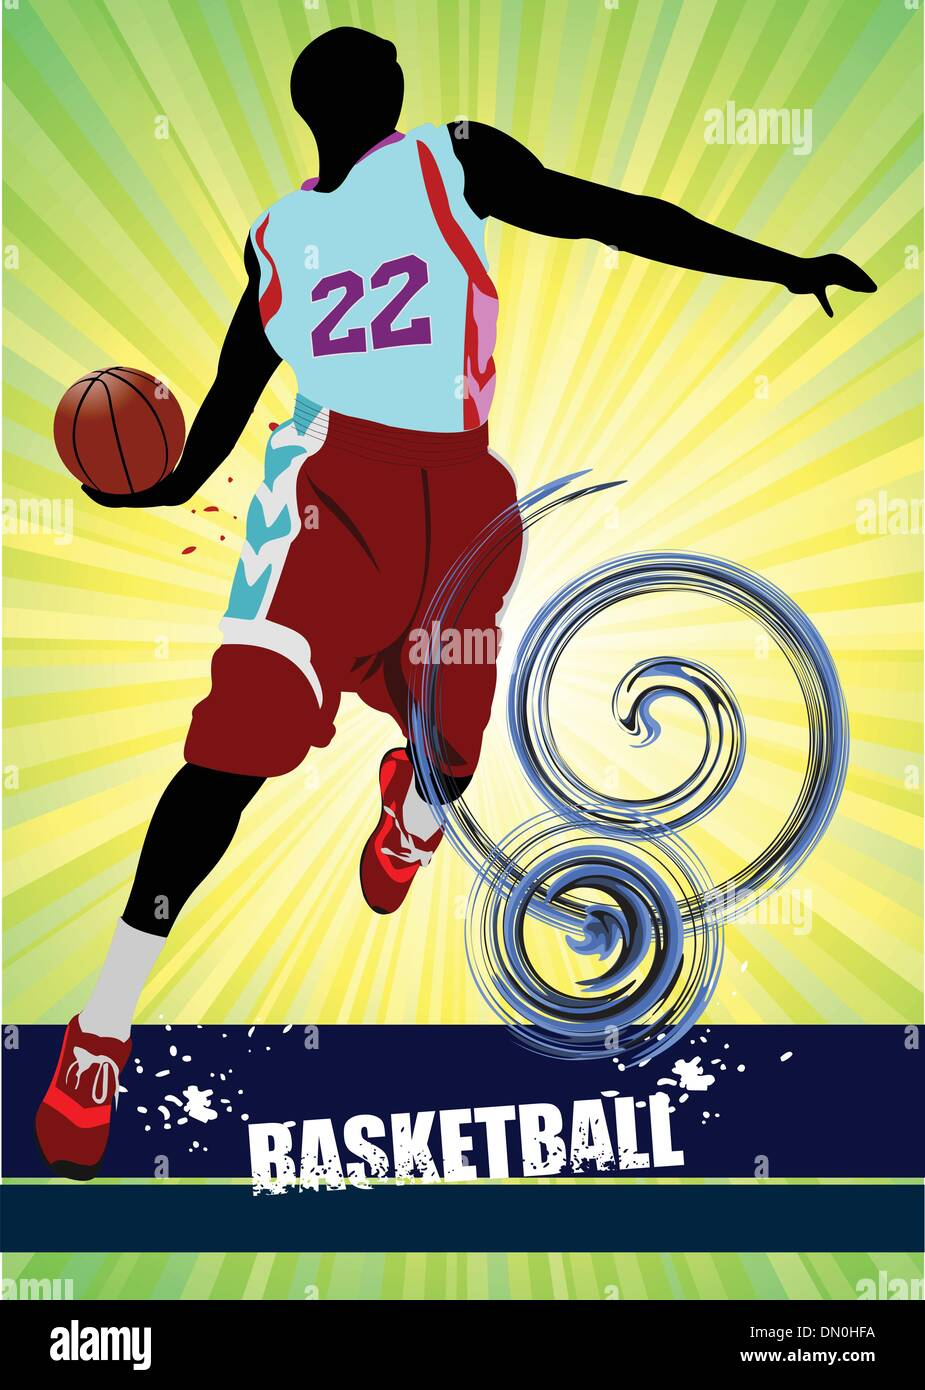 Basketball-Plakat. Vektor-illustration Stockbild